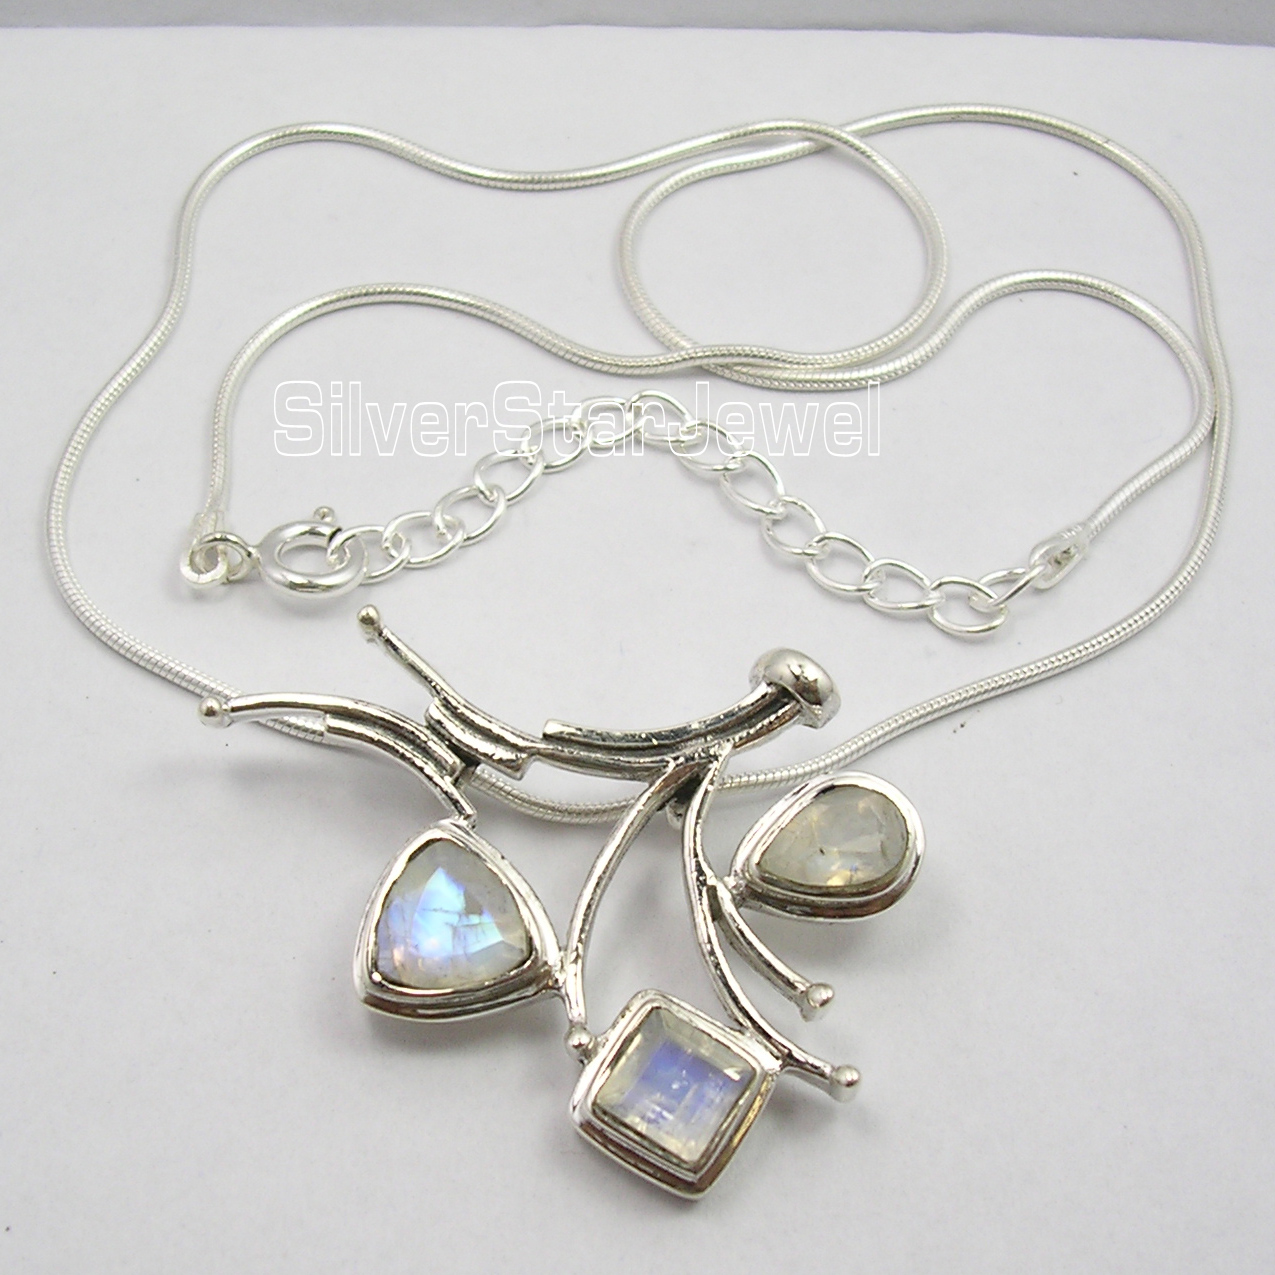 Chanti International . Pure Silver BLUE FIRE RAINBOW MOONSTONE 3 STONE TRENDY Necklace 18.5 Inches signed gfriend autographed photo rainbow 6 inches freeshipping 2 versions 102017